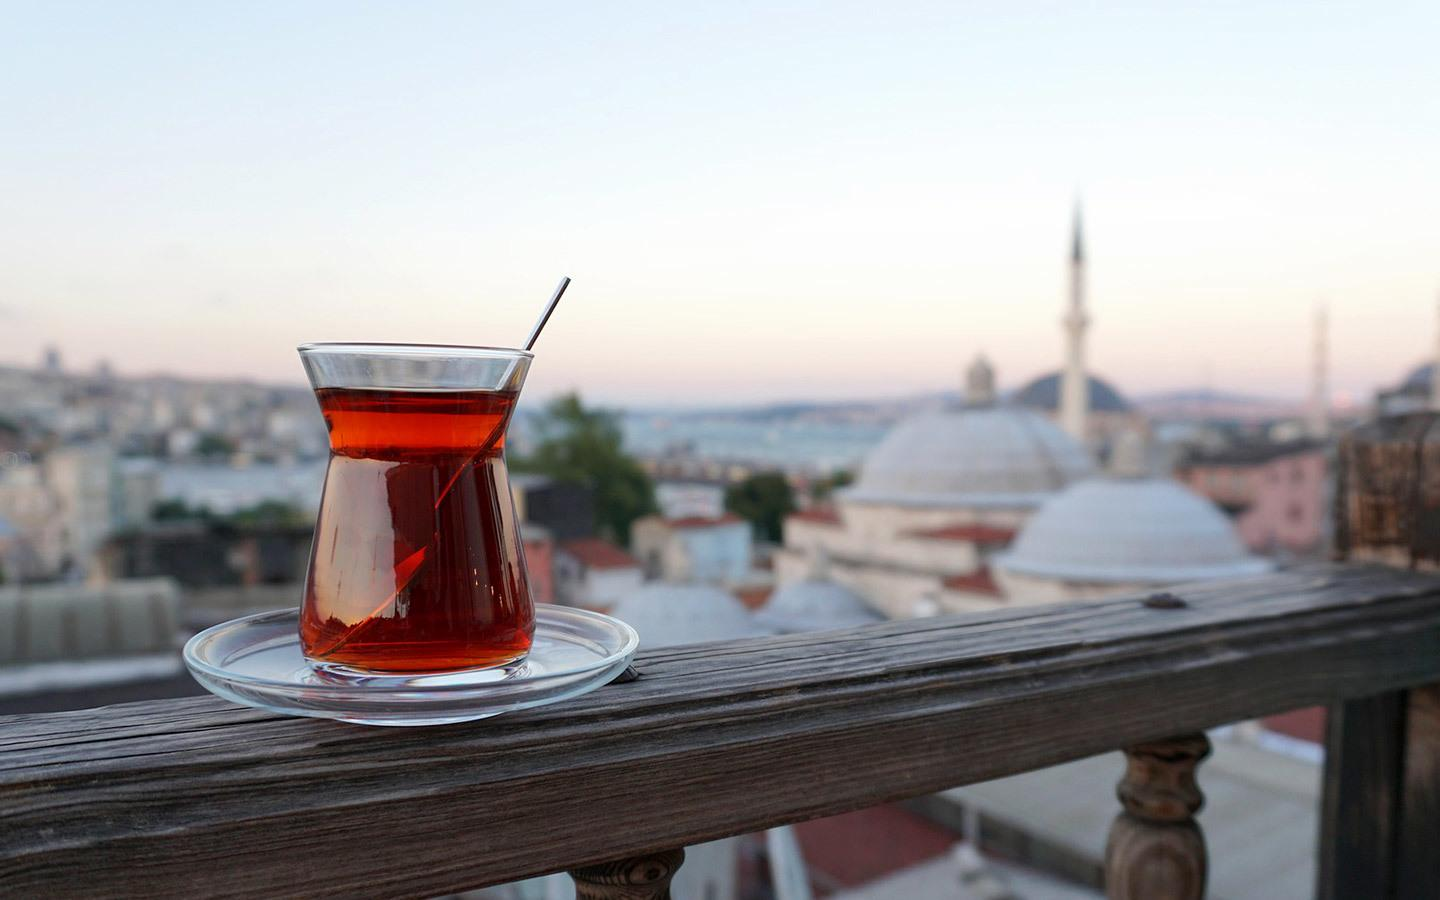 Cup of tea on a rooftop terrace overlooking Sultanahmet in Istanbul